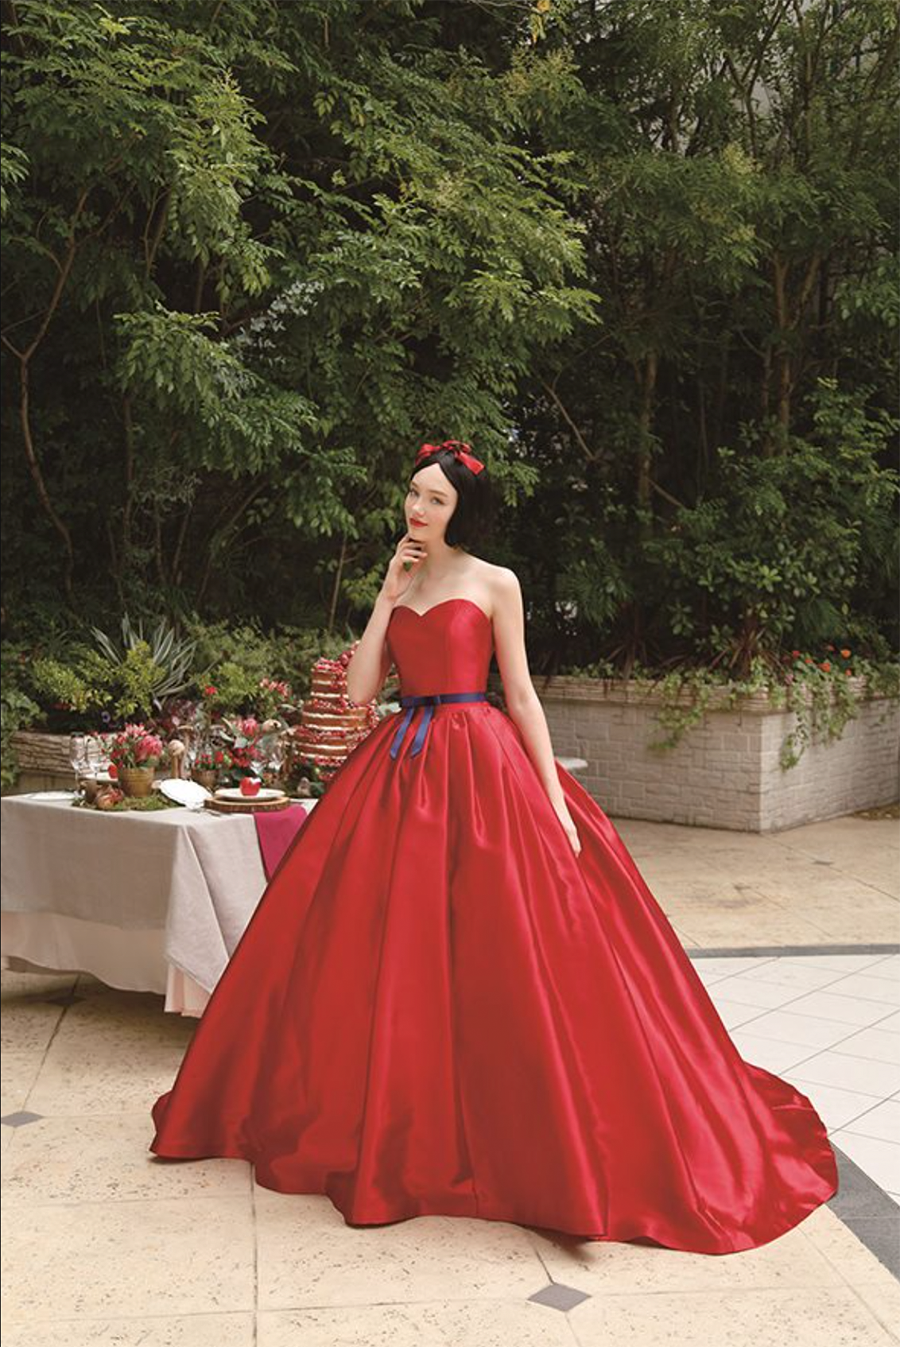 14 Disney Princess Wedding Dresses That Will Make Your Dreams Come